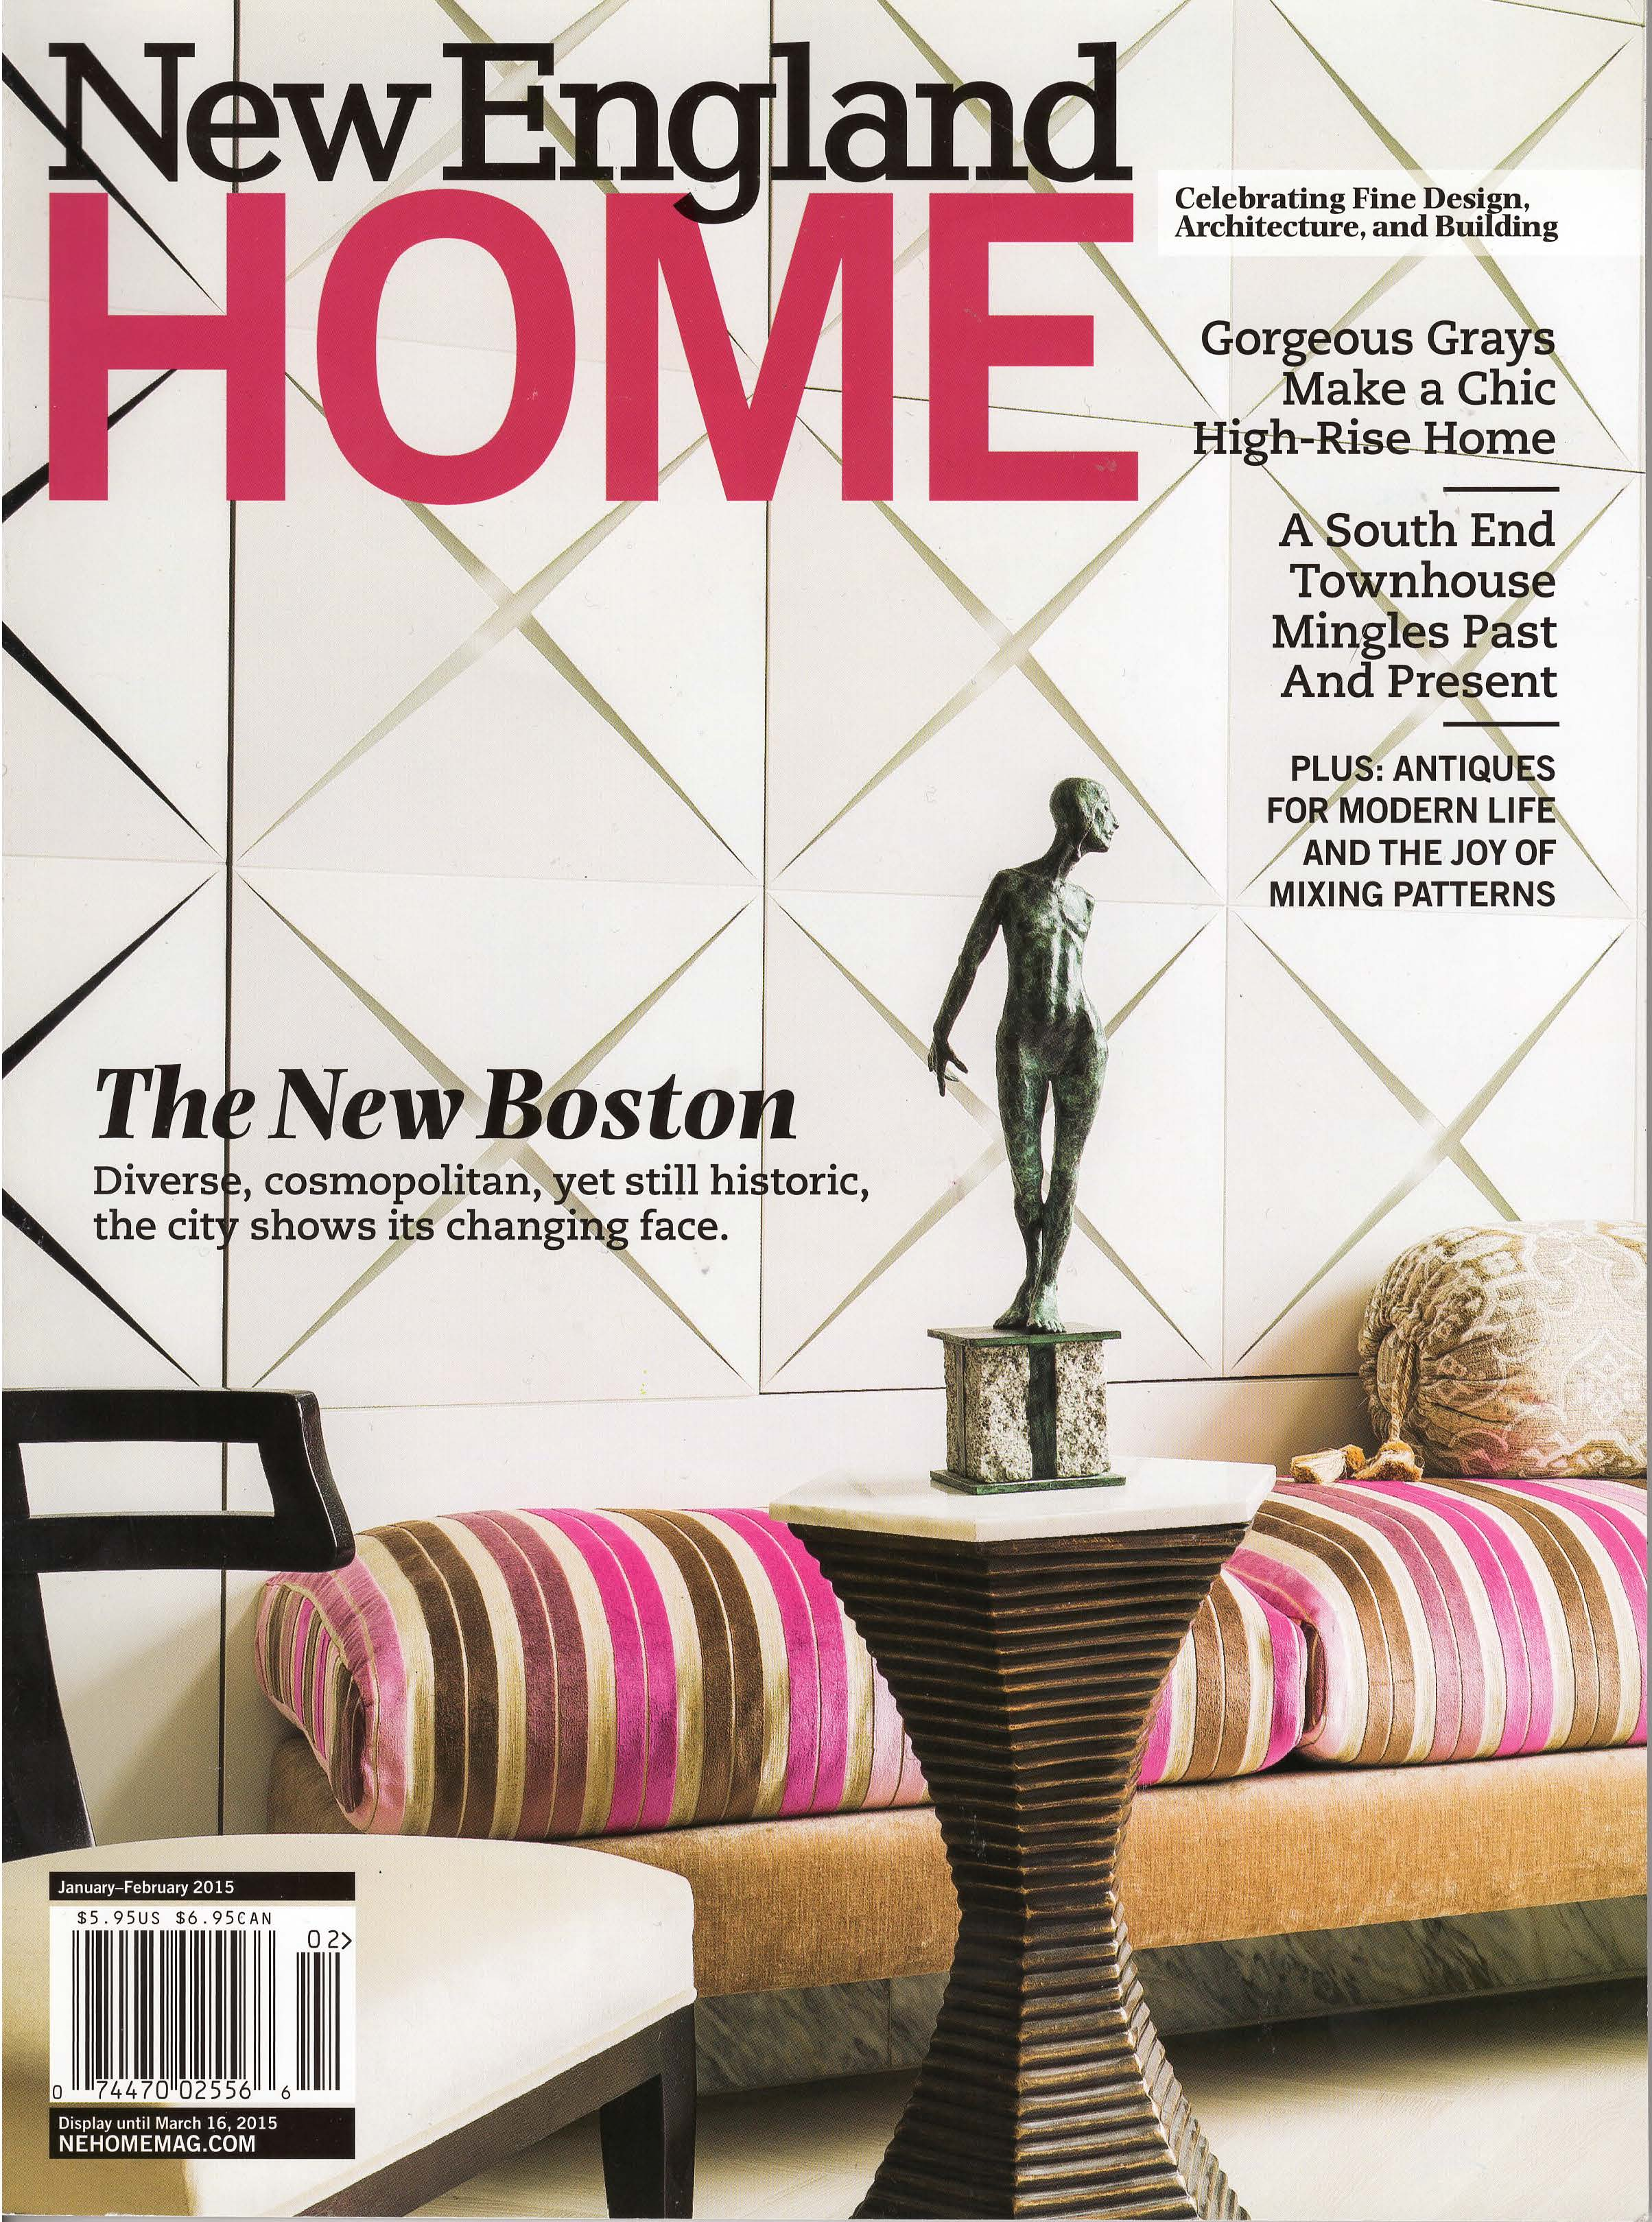 Tall Story      Jan/Feb 2015     New England Home   A colorful redo of an old South End townhouse offers glimpses of a glorious history even as it celebrates modern living.